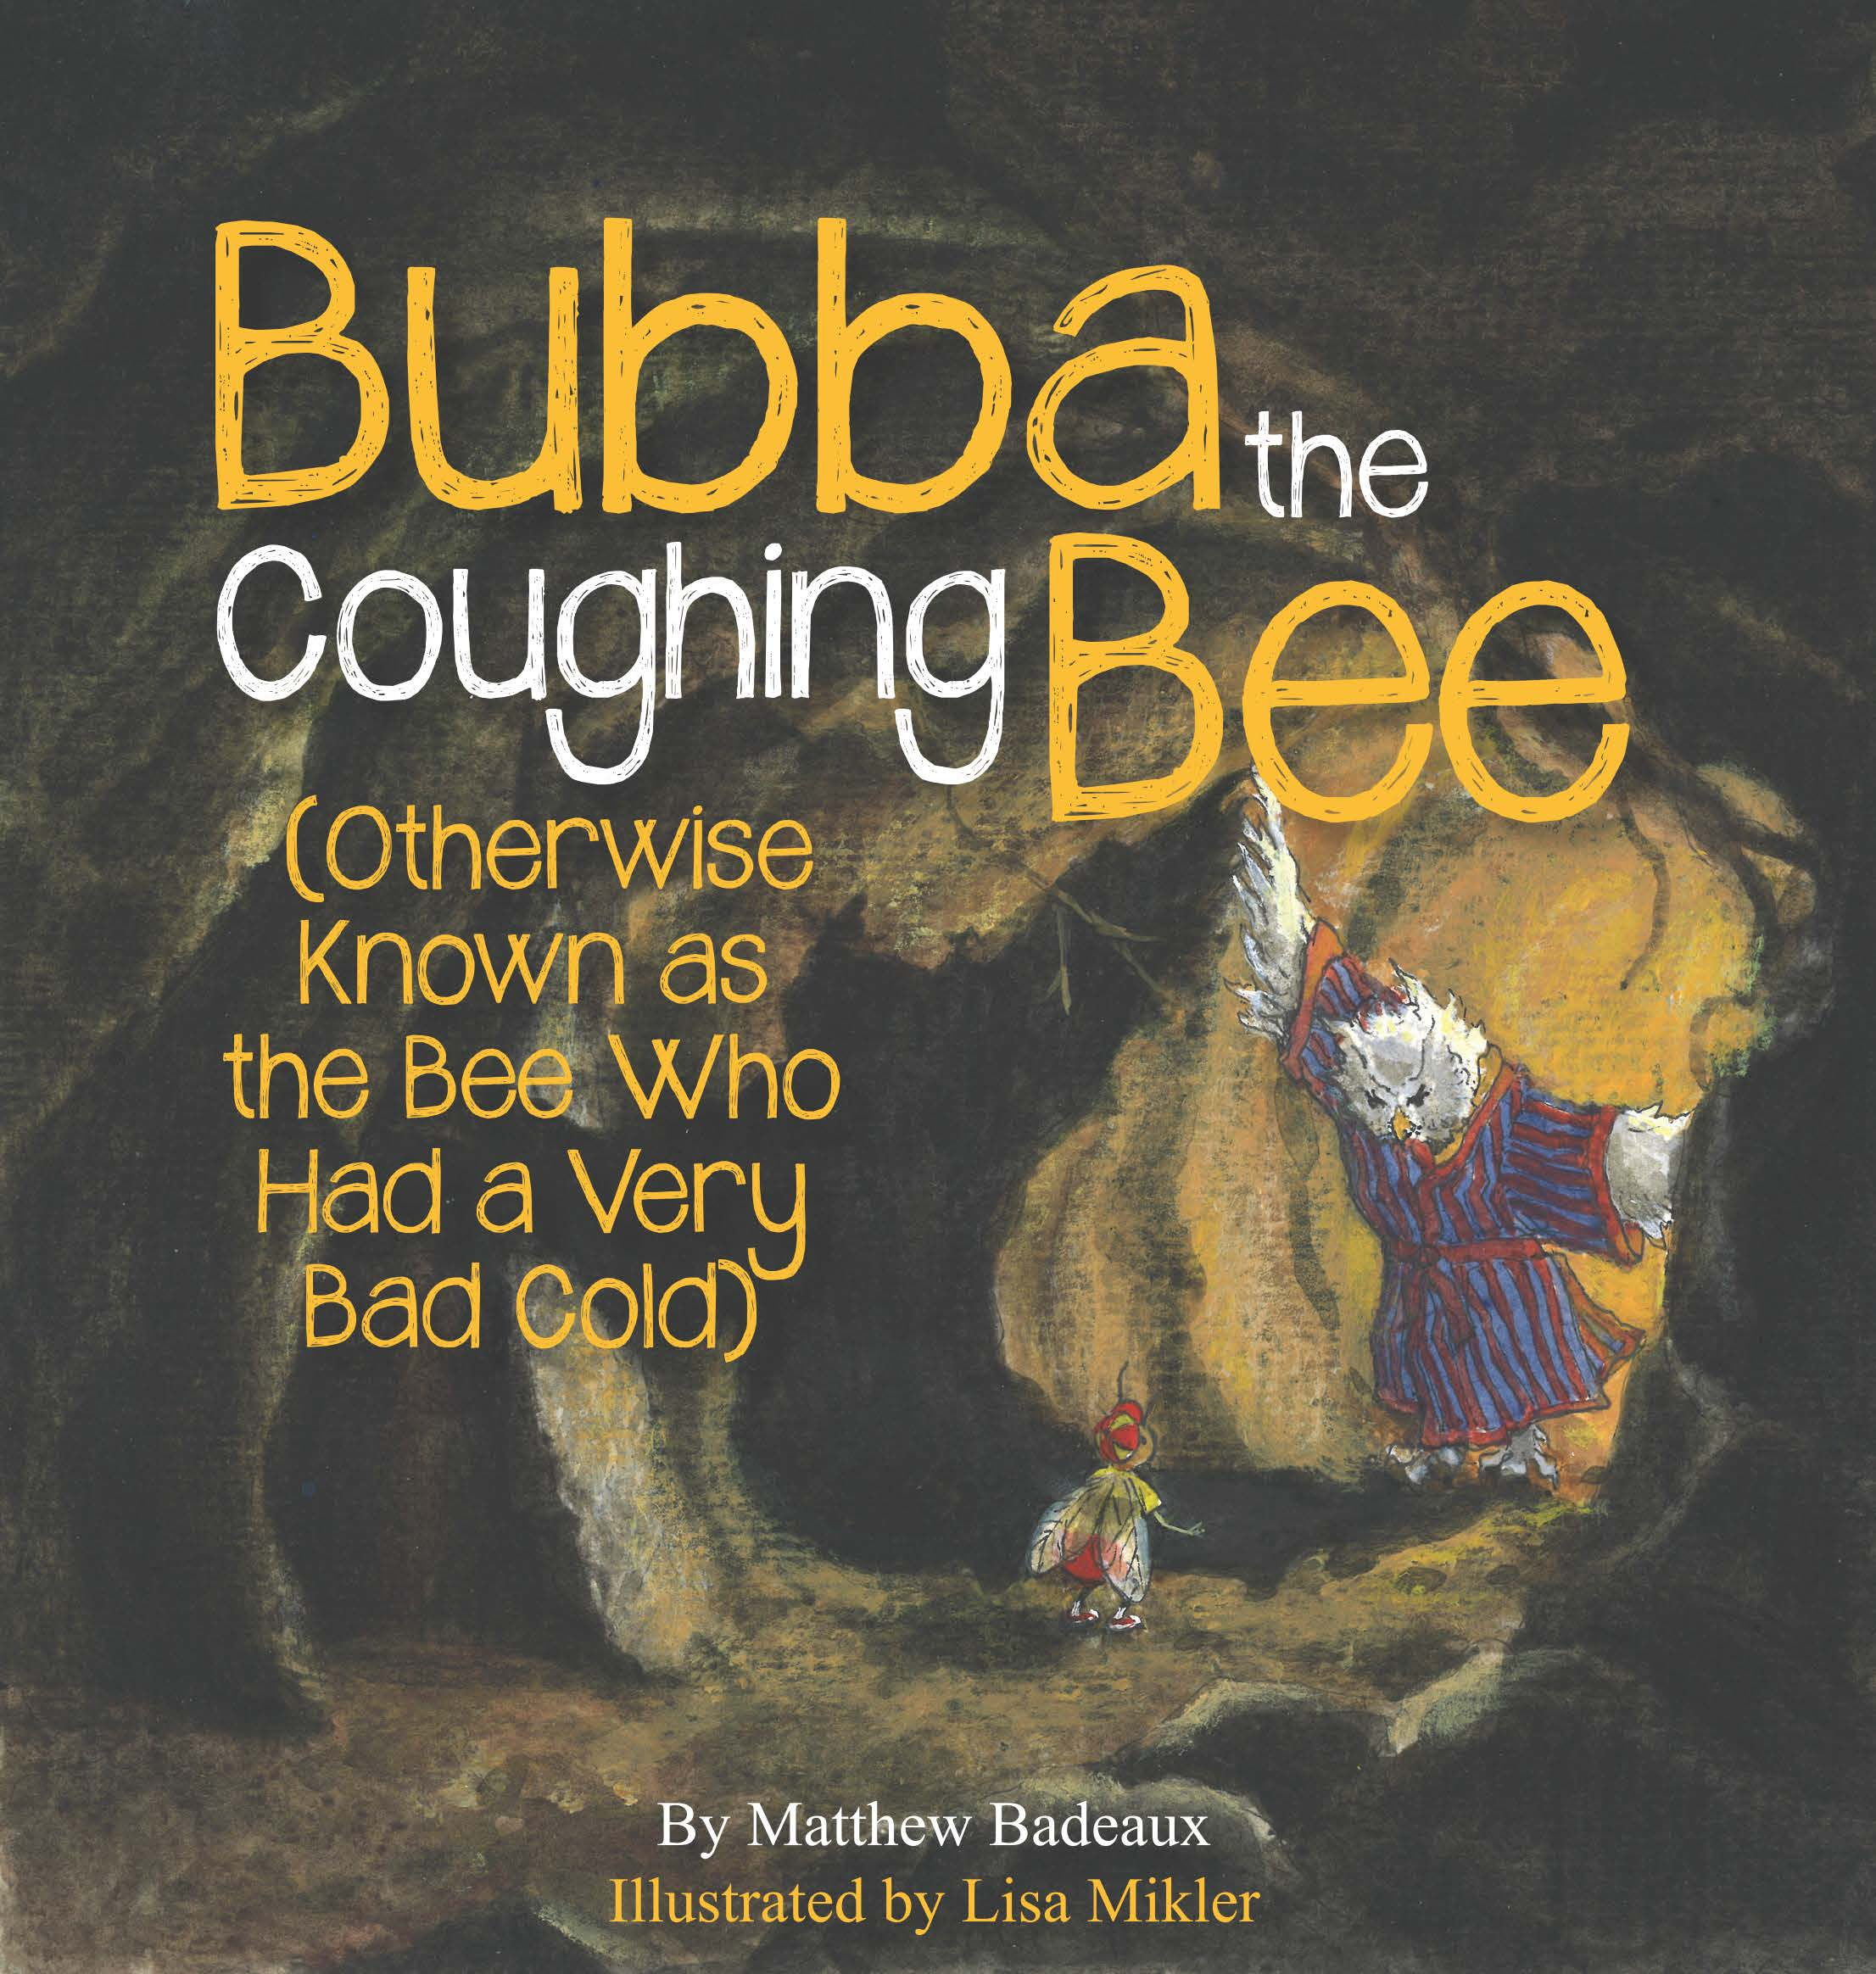 Bubba The Coughing Bee